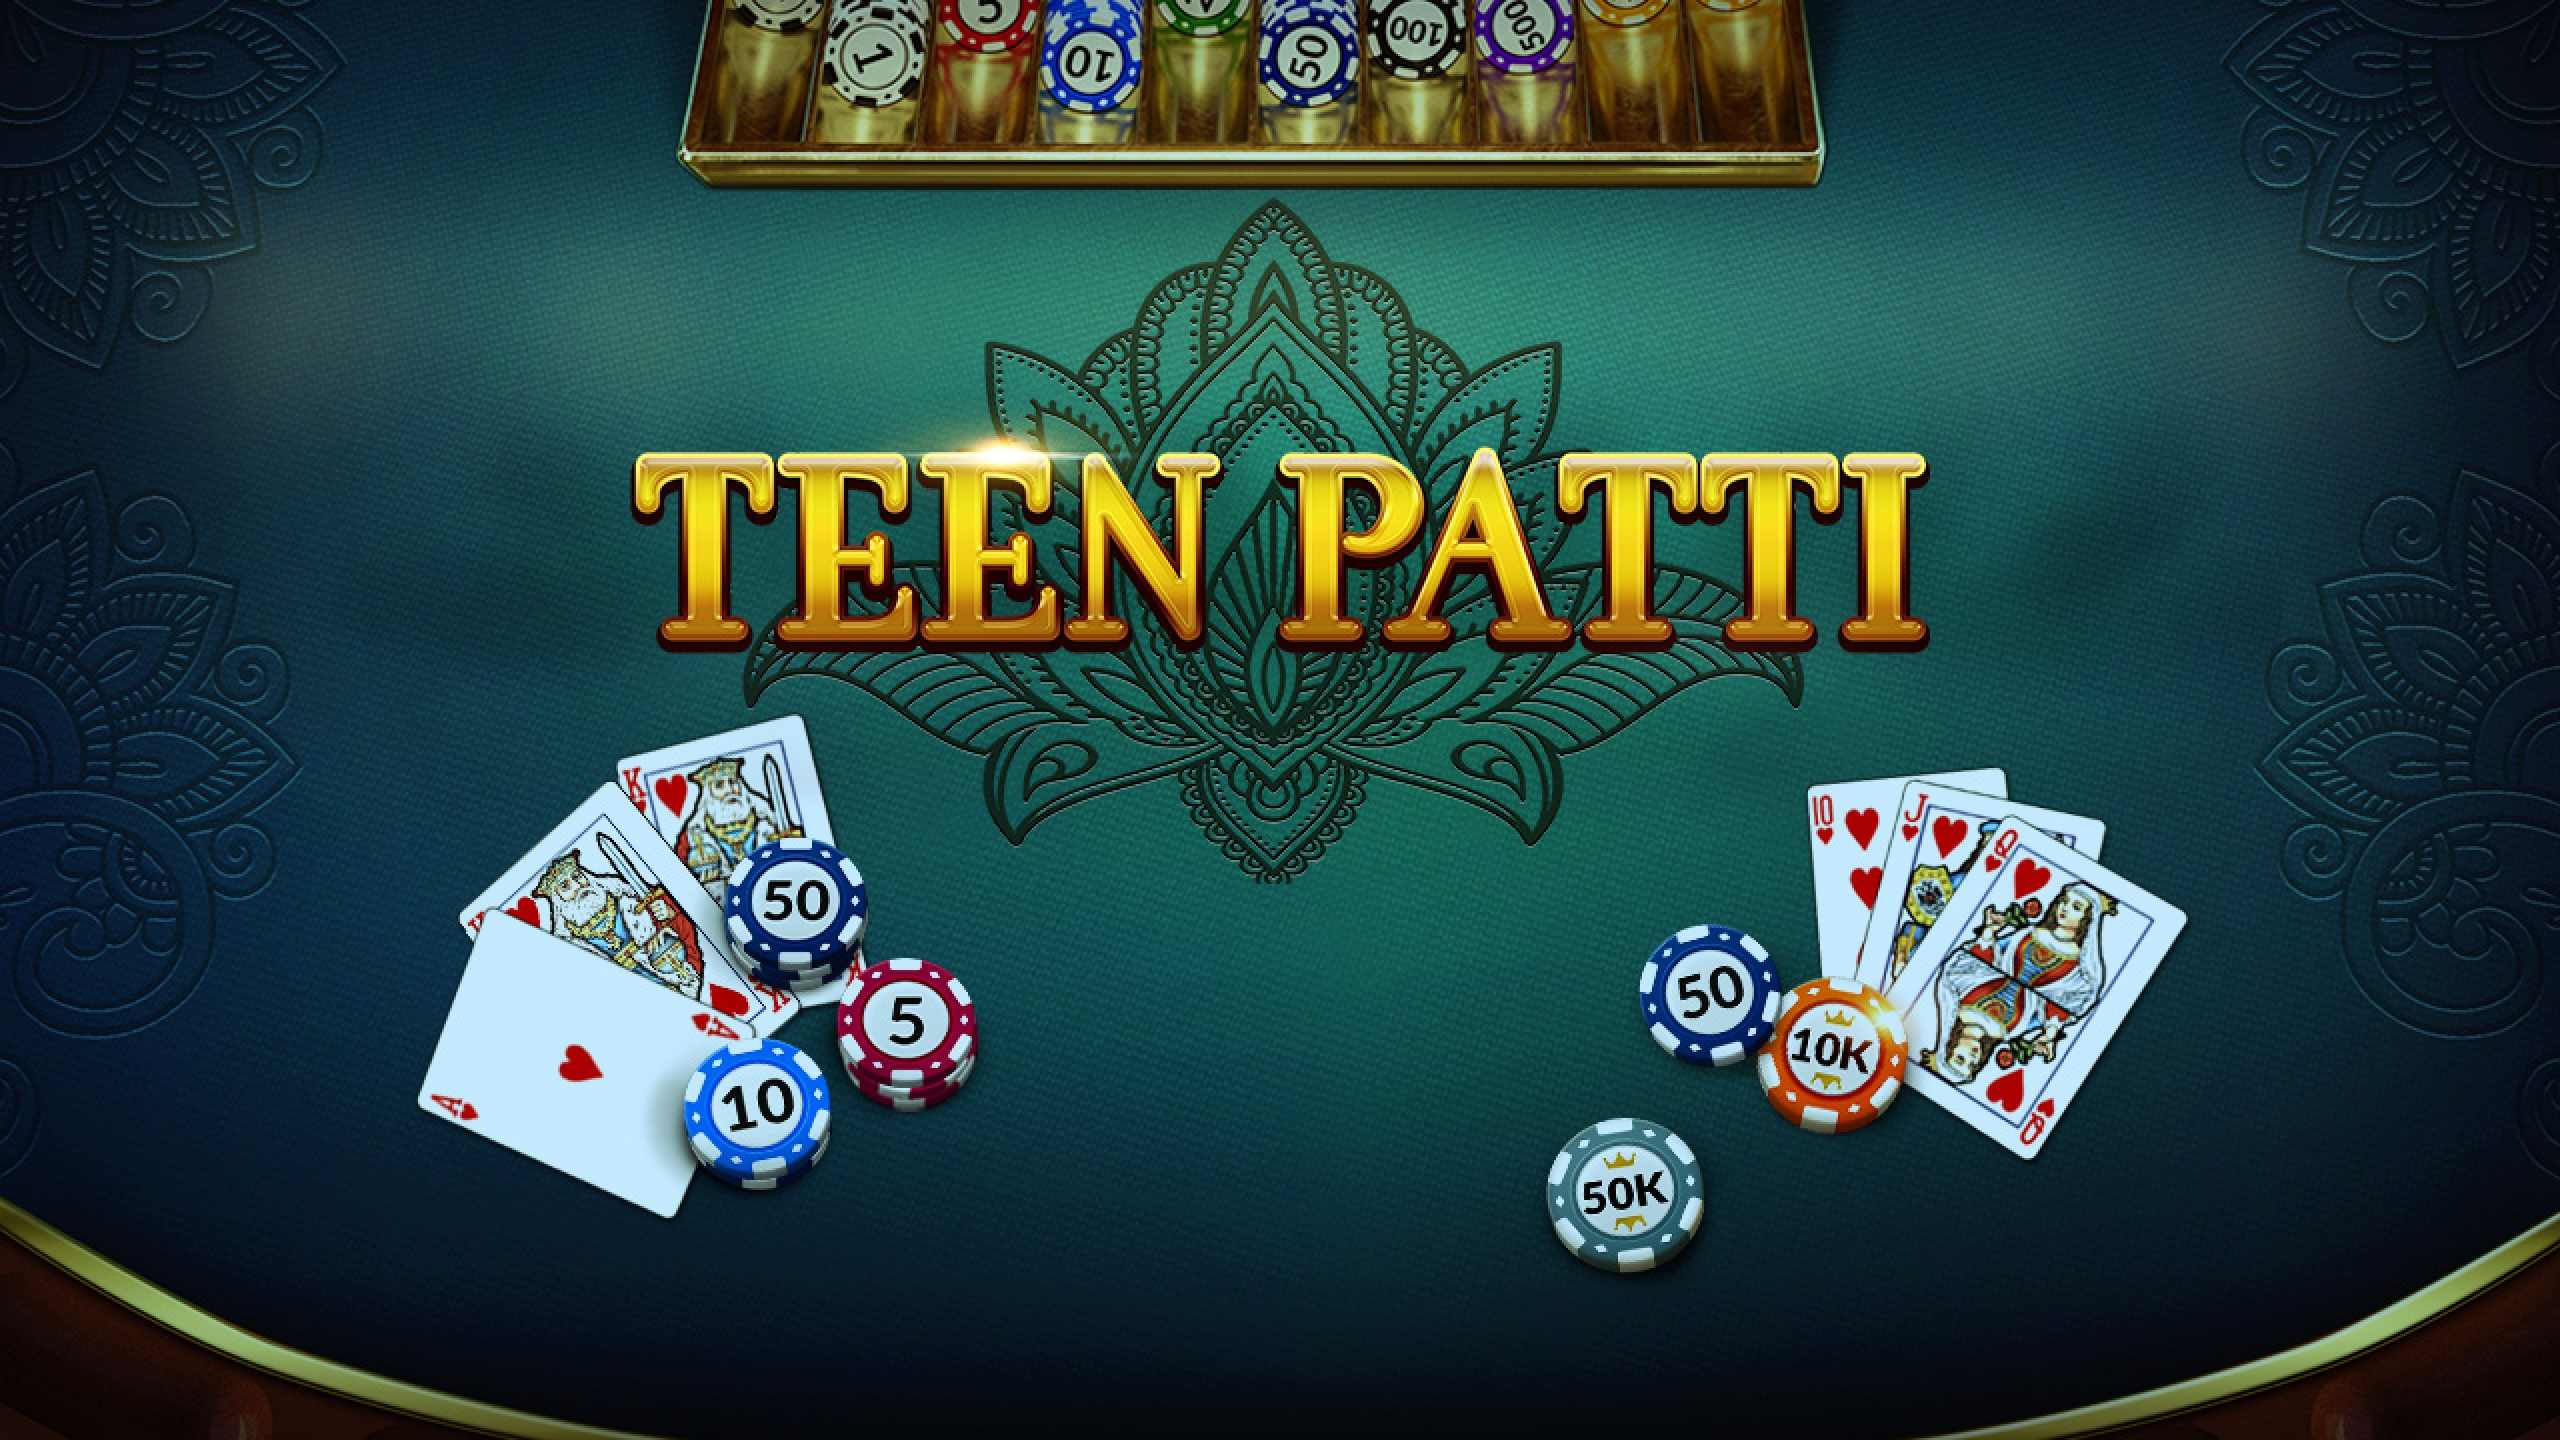 The Poker Teen Patti Online Slot Demo Game by Evoplay Entertainment